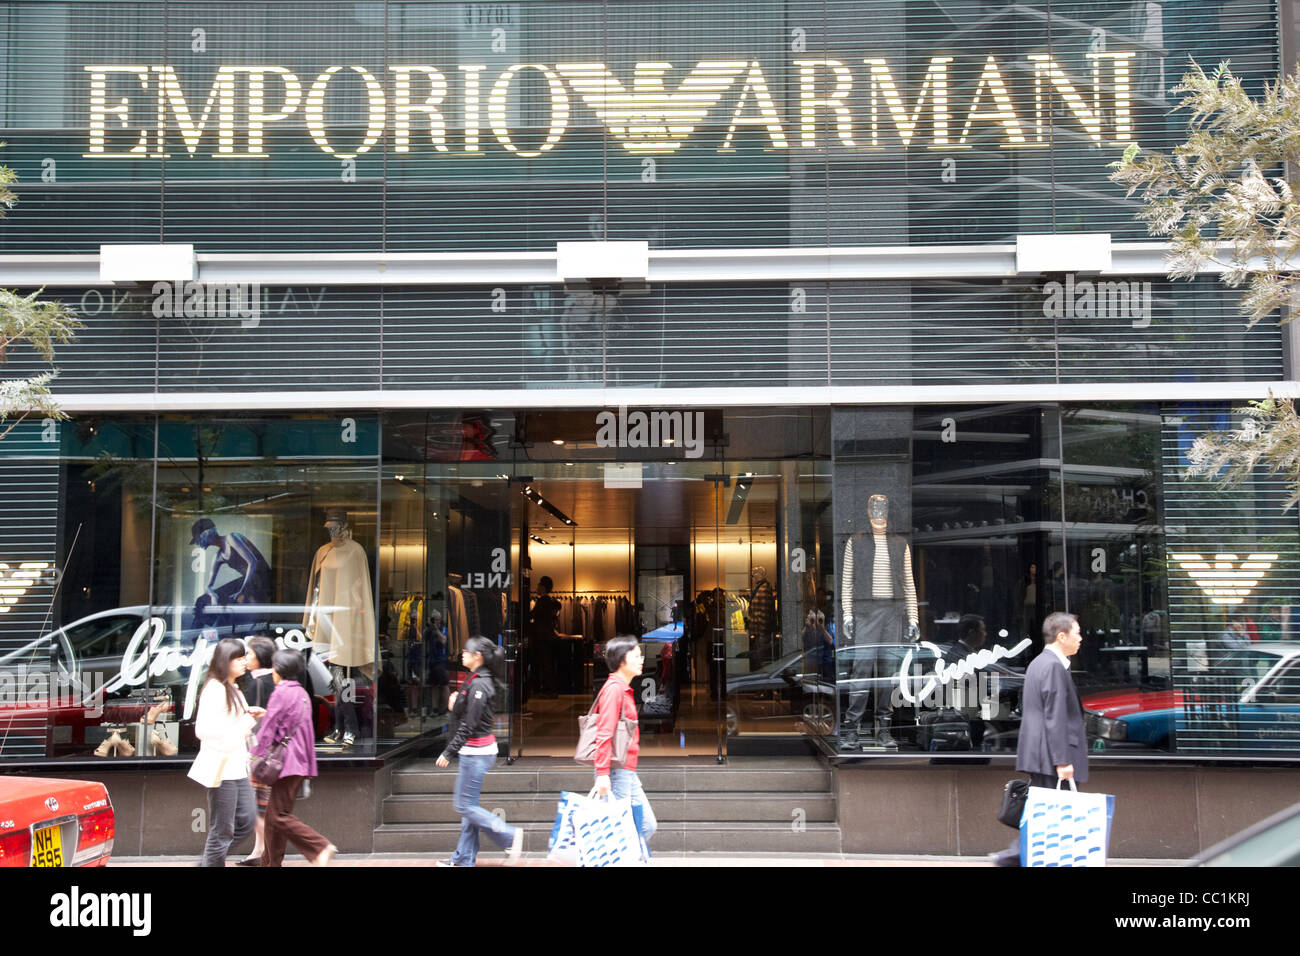 emporio armani store on affluent expensive luxury shopping area hong kong hksar china asia - Stock Image